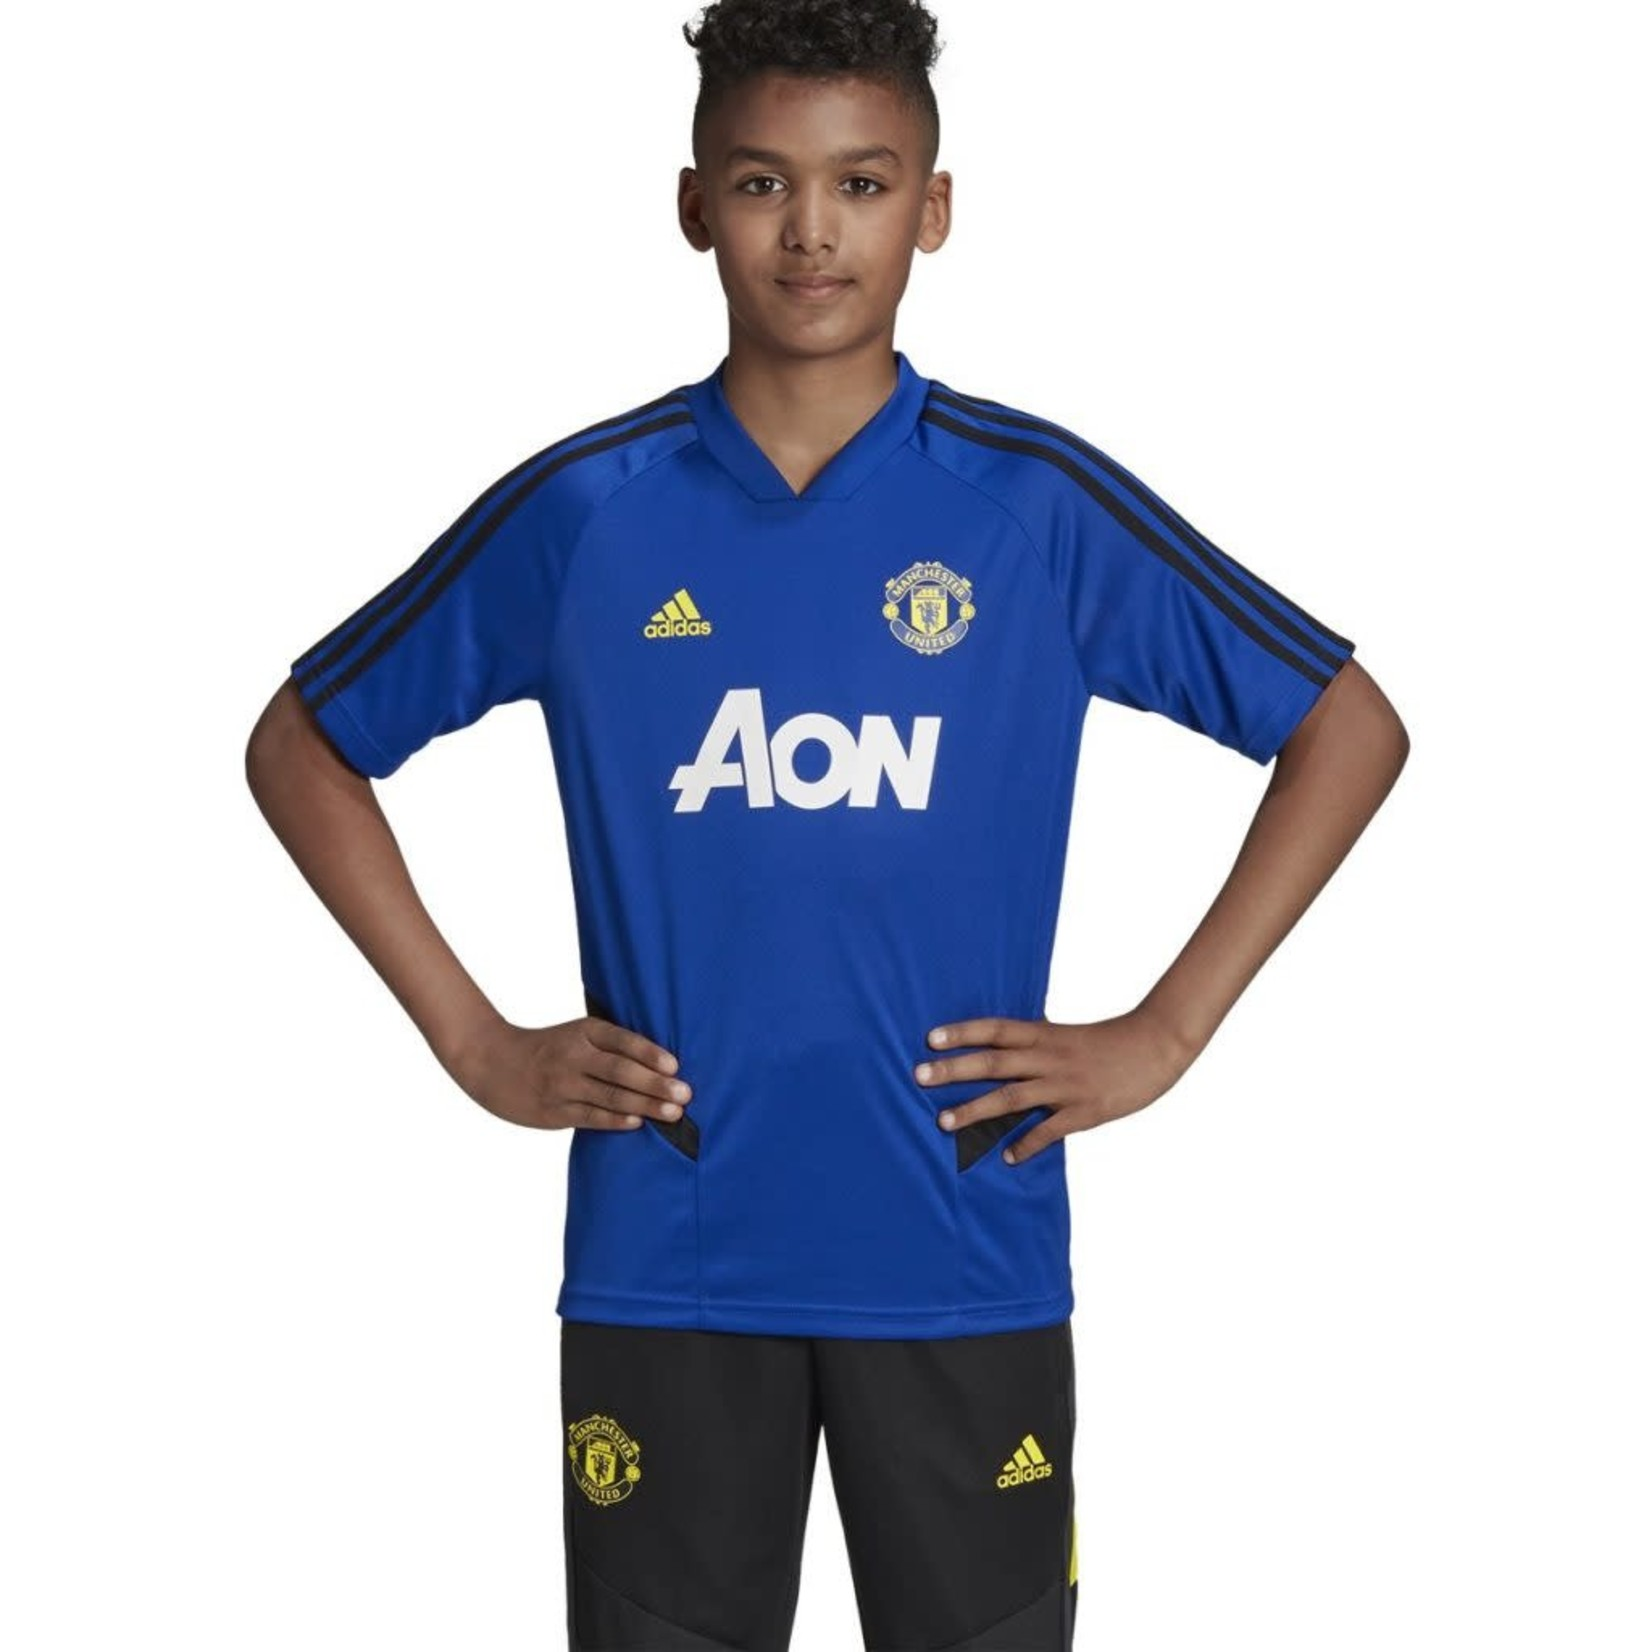 ADIDAS MANCHESTER UNITED 19/20 TRAINING JERSEY YOUTH